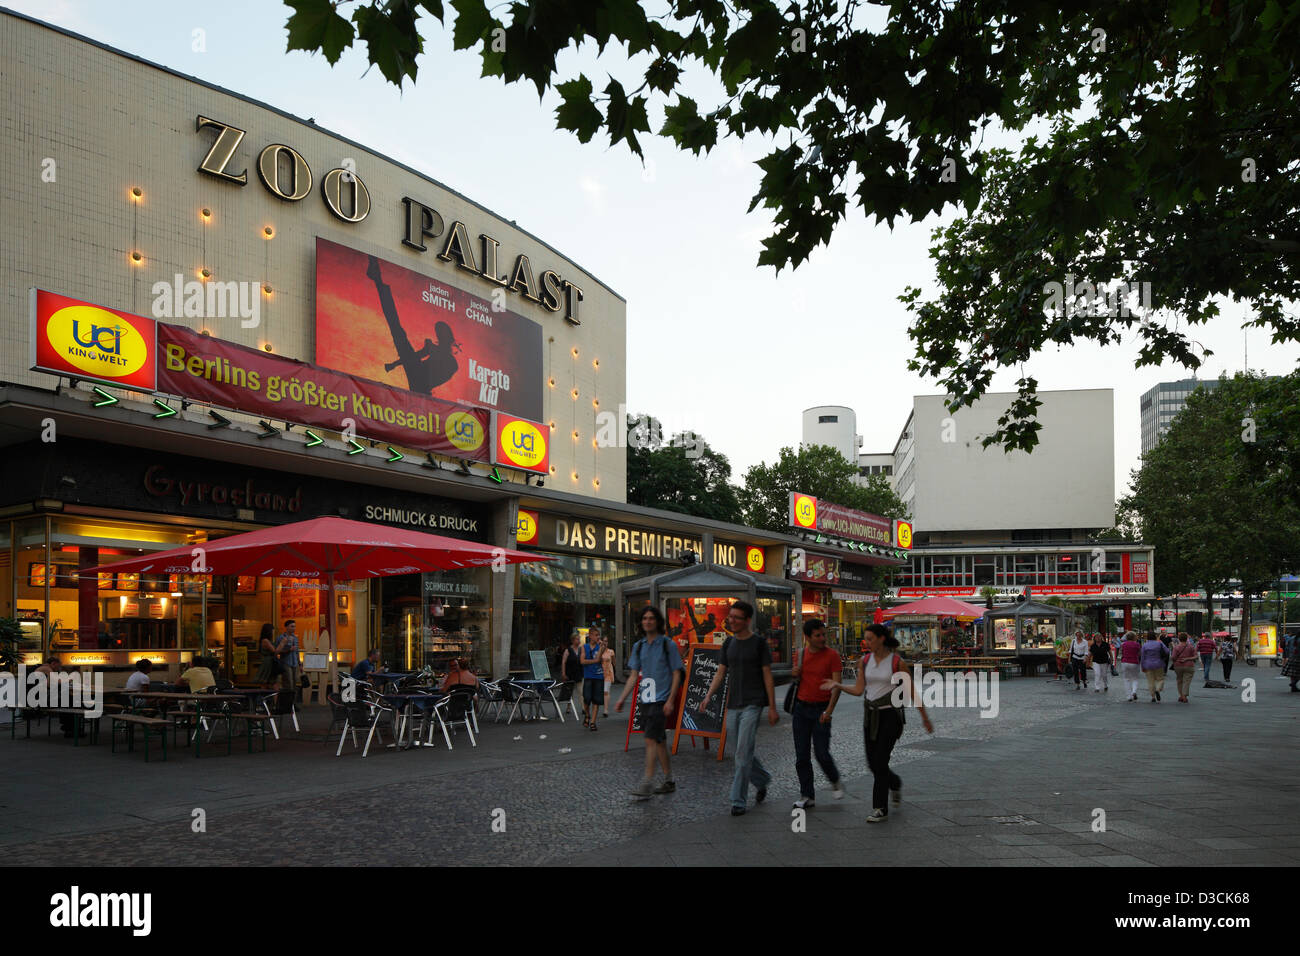 Zoologischer Garten Berlin Kino Zoo Palast Cinema Stock Photos And Zoo Palast Cinema Stock